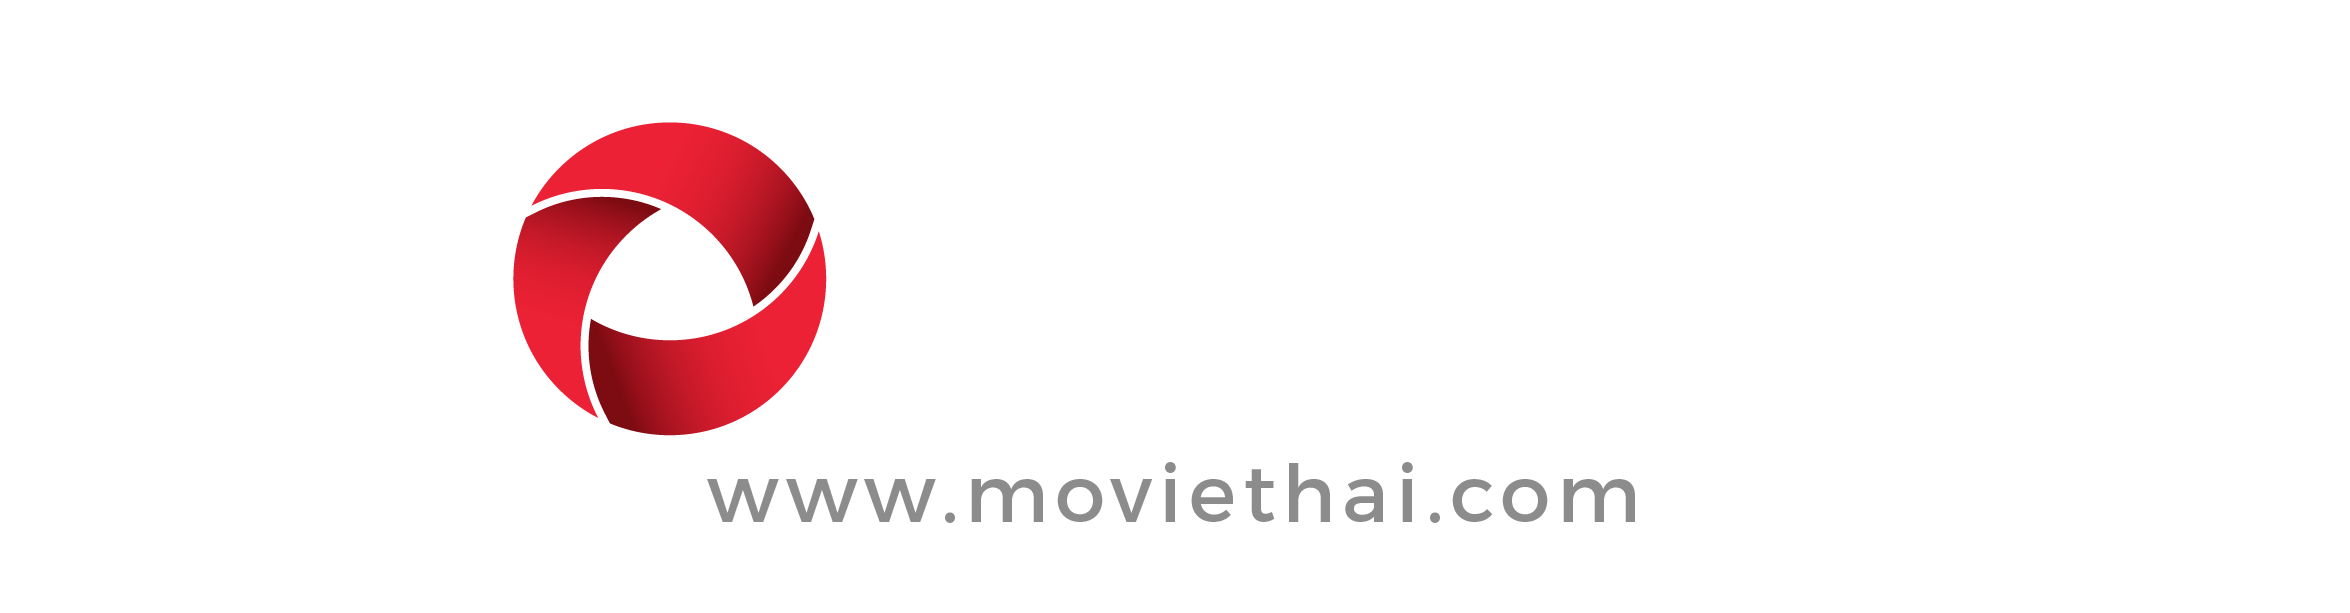 MovieThai